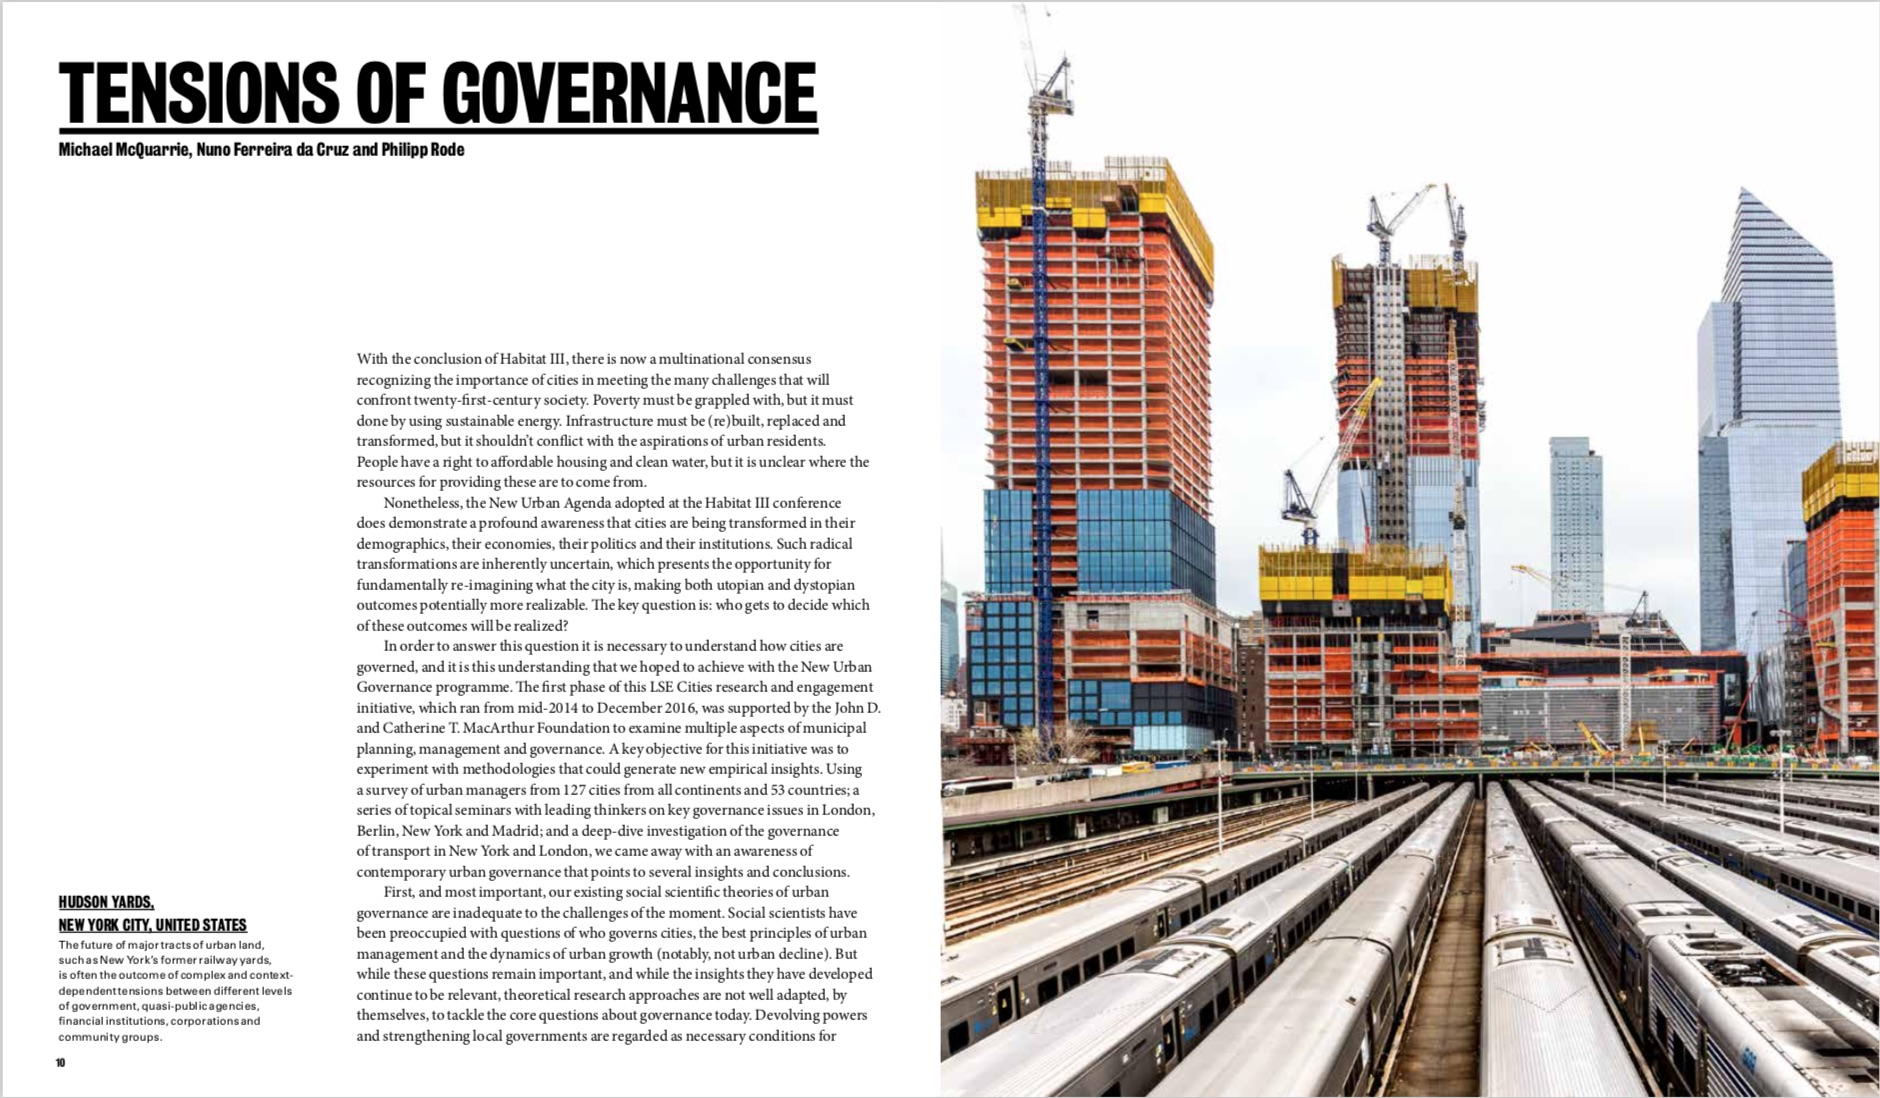 By Ricky Burdett and Philipp Rode from Shaping Cities in an Urban Age copyright Phaidon 2018